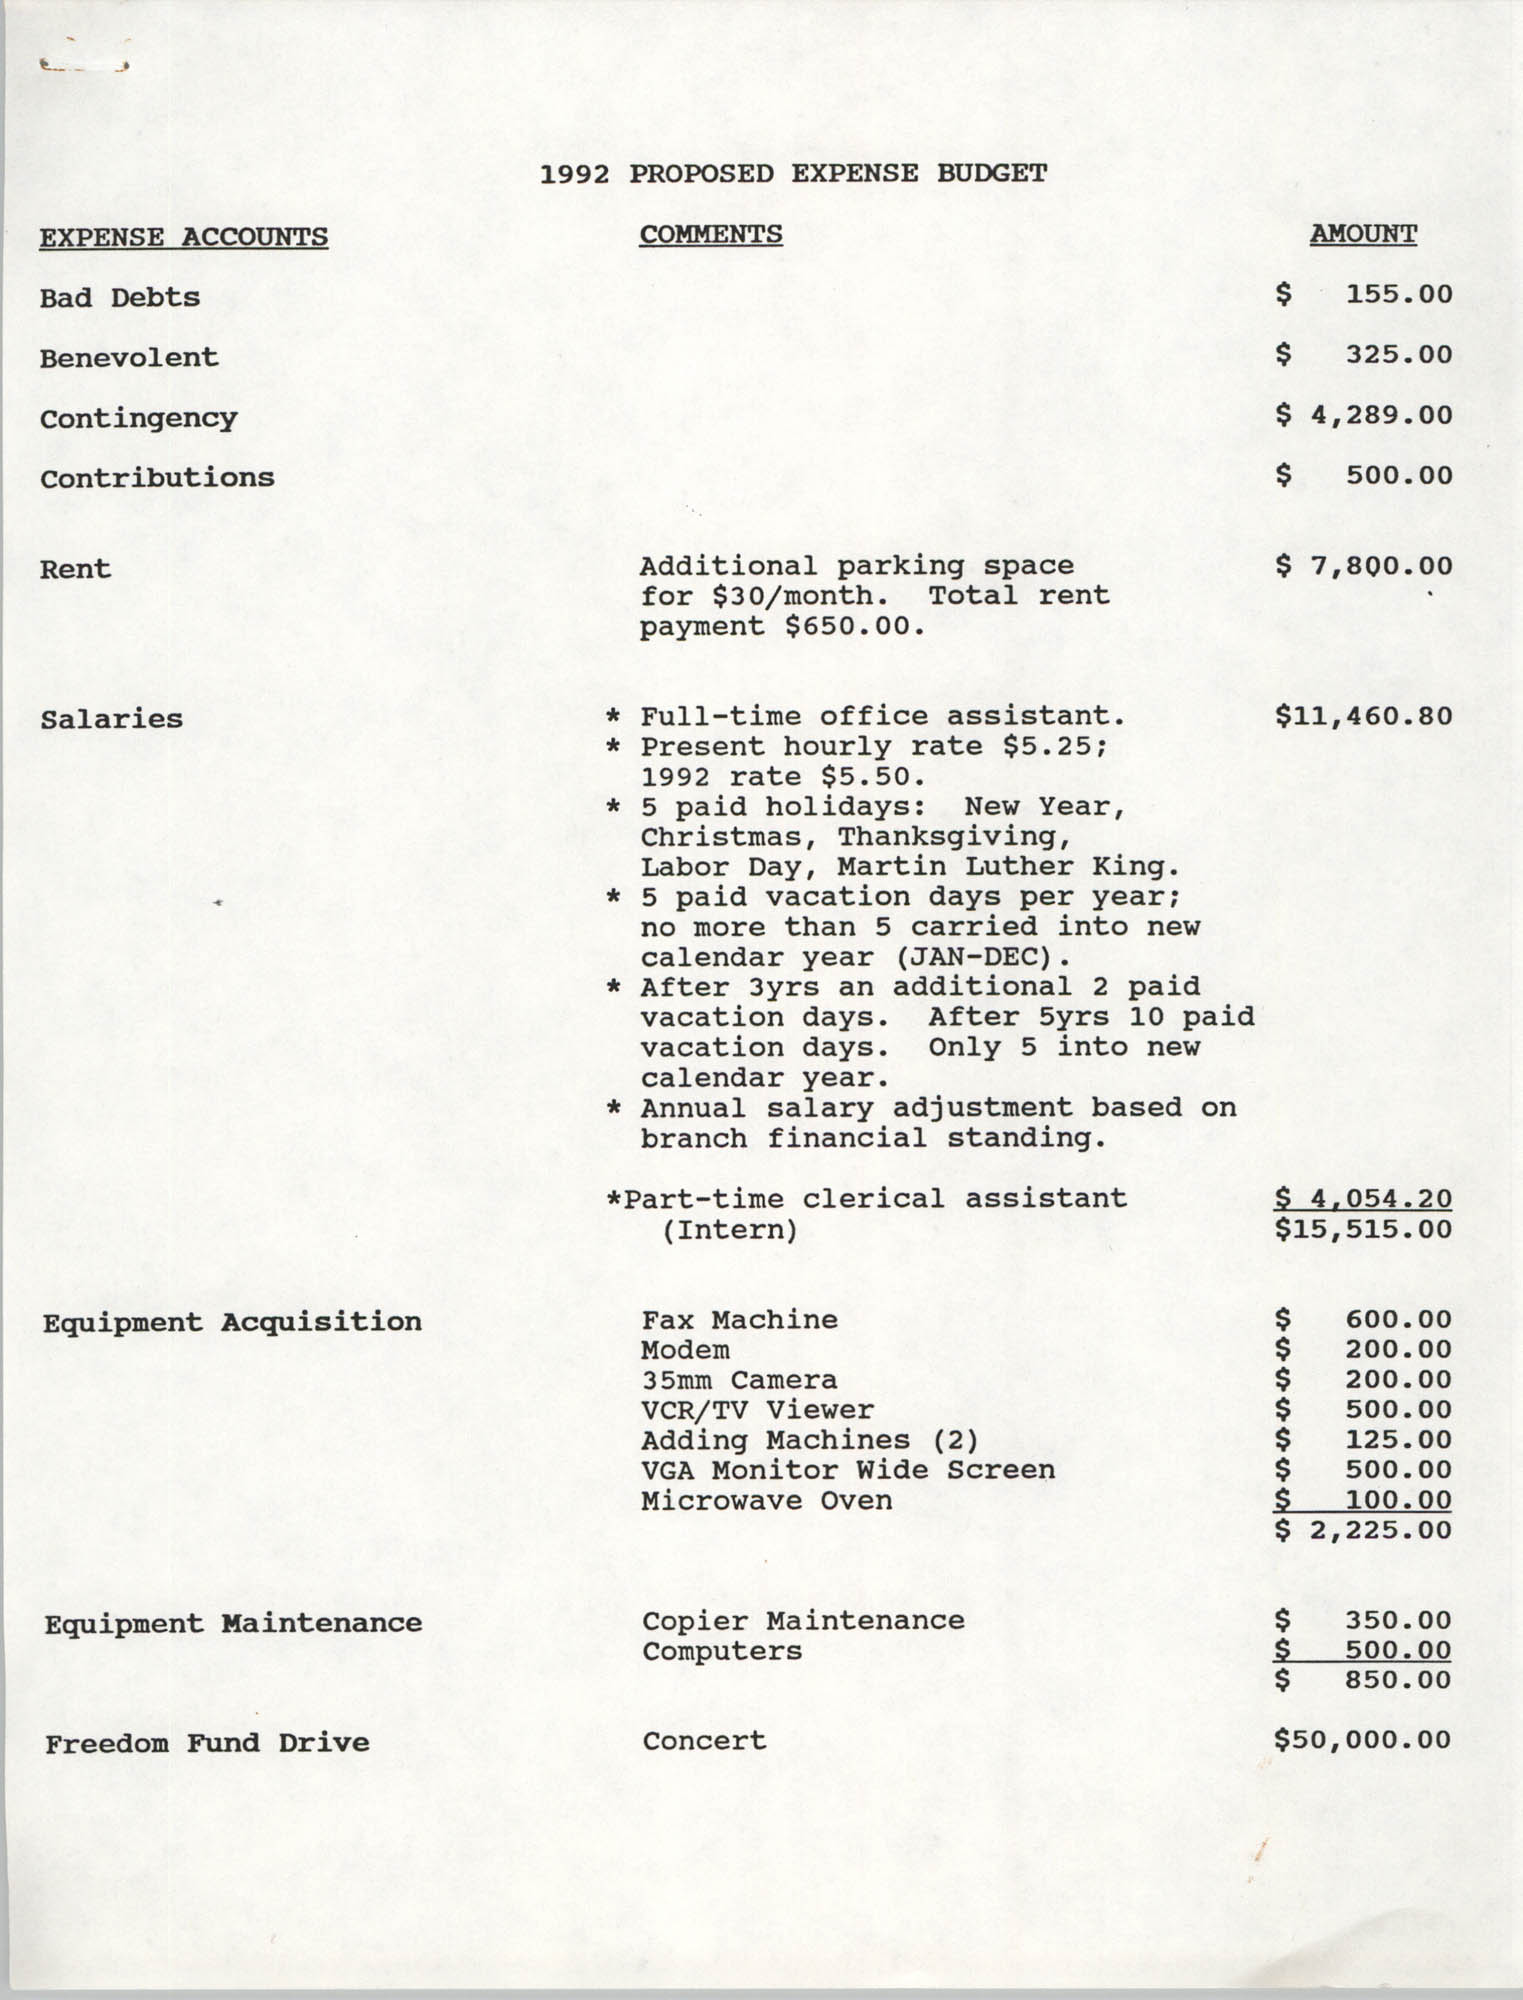 Charleston Branch of the NAACP Proposed Expense Budget, 1992